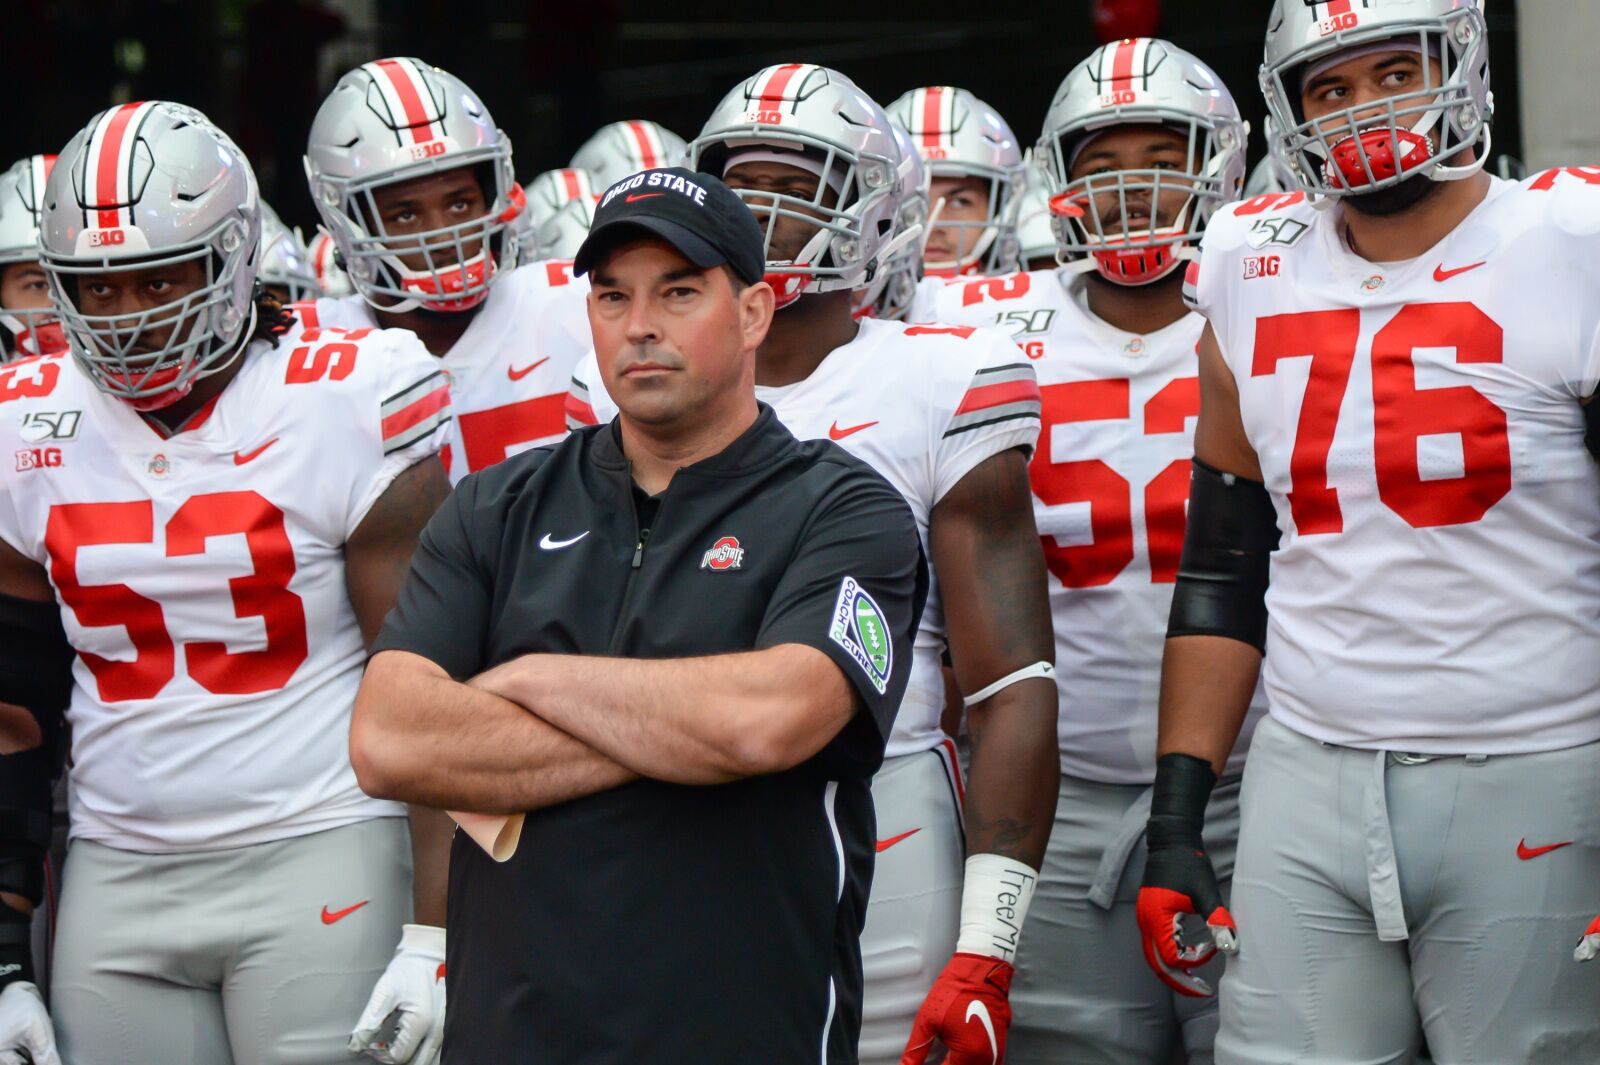 Ohio State Football: Numbers don't lie, most complete team in CFB